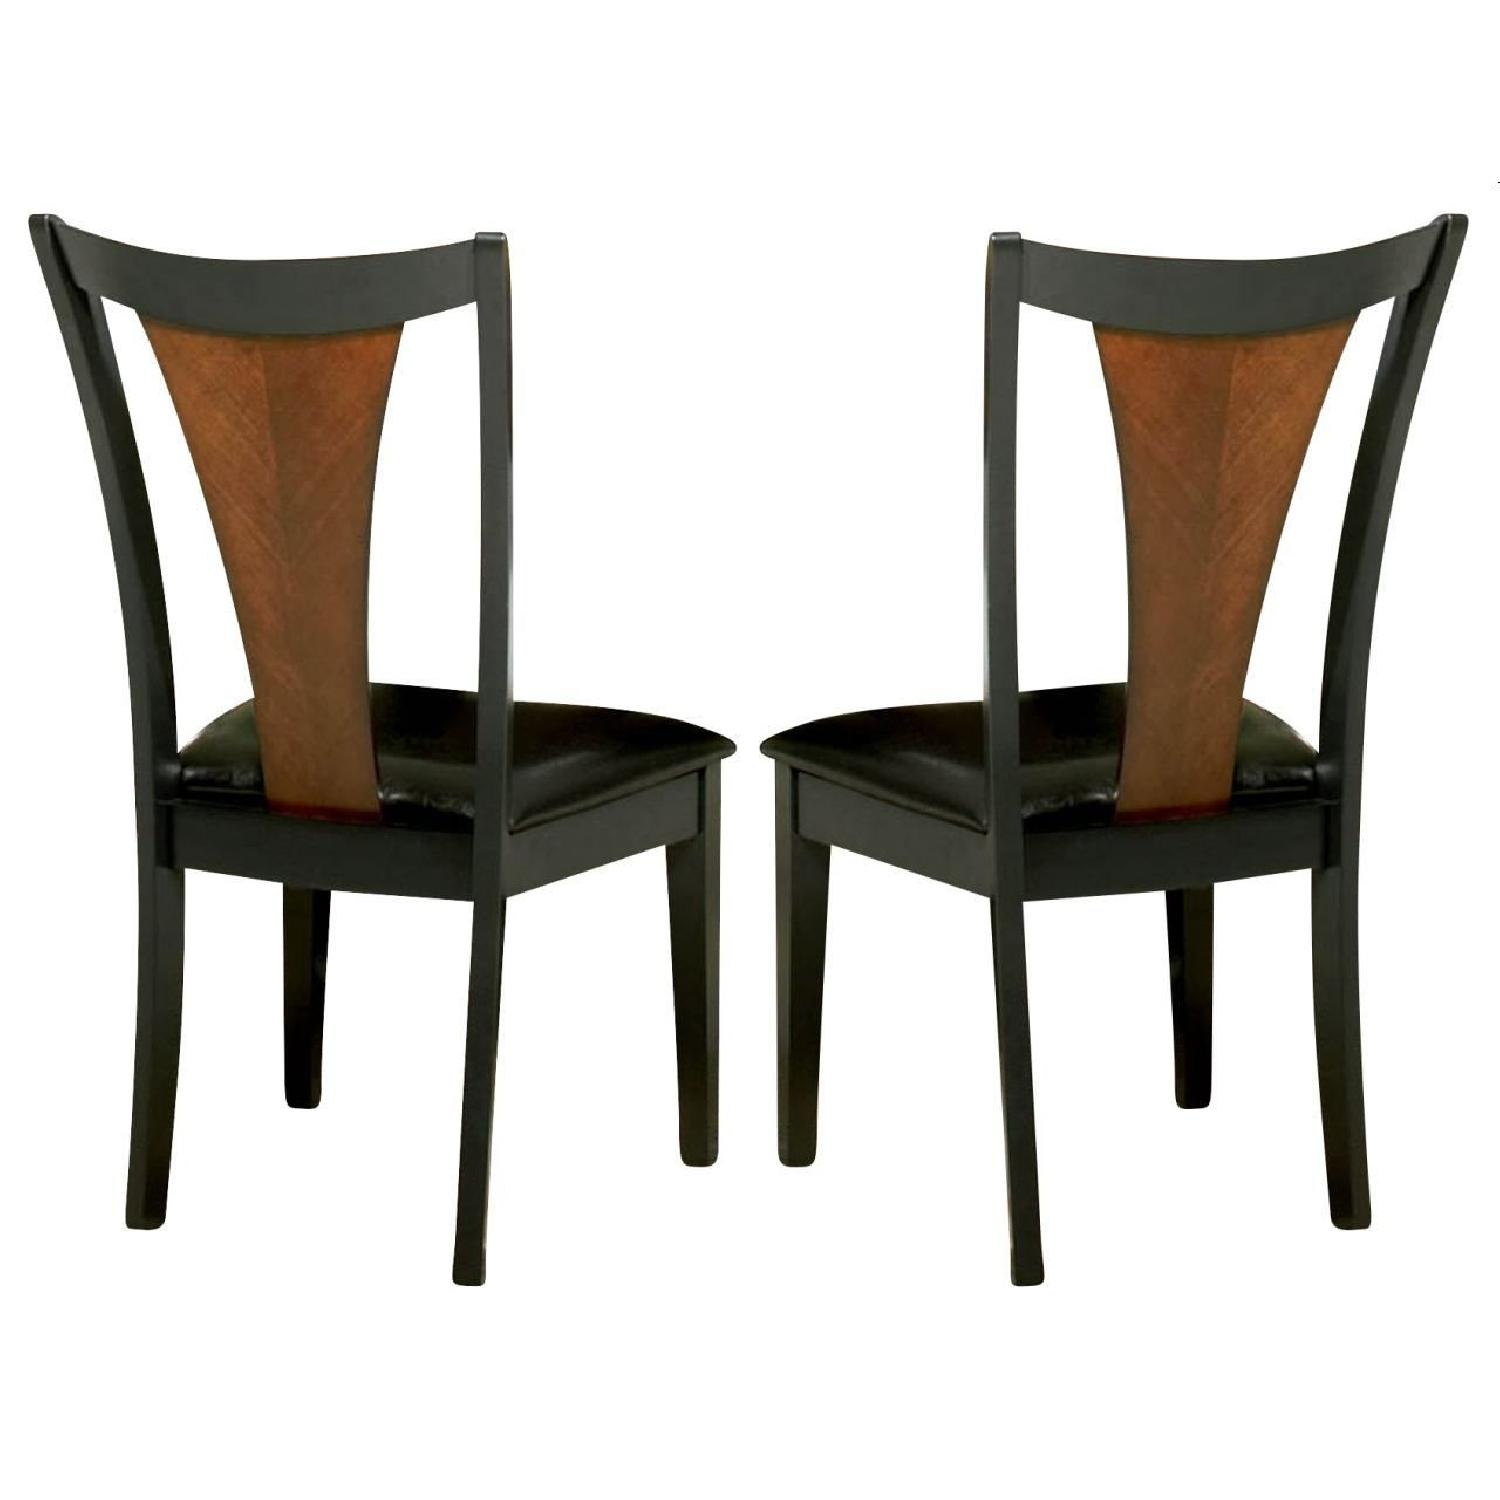 Dining Chair in 2-Tone Amber/Black Finish - image-0